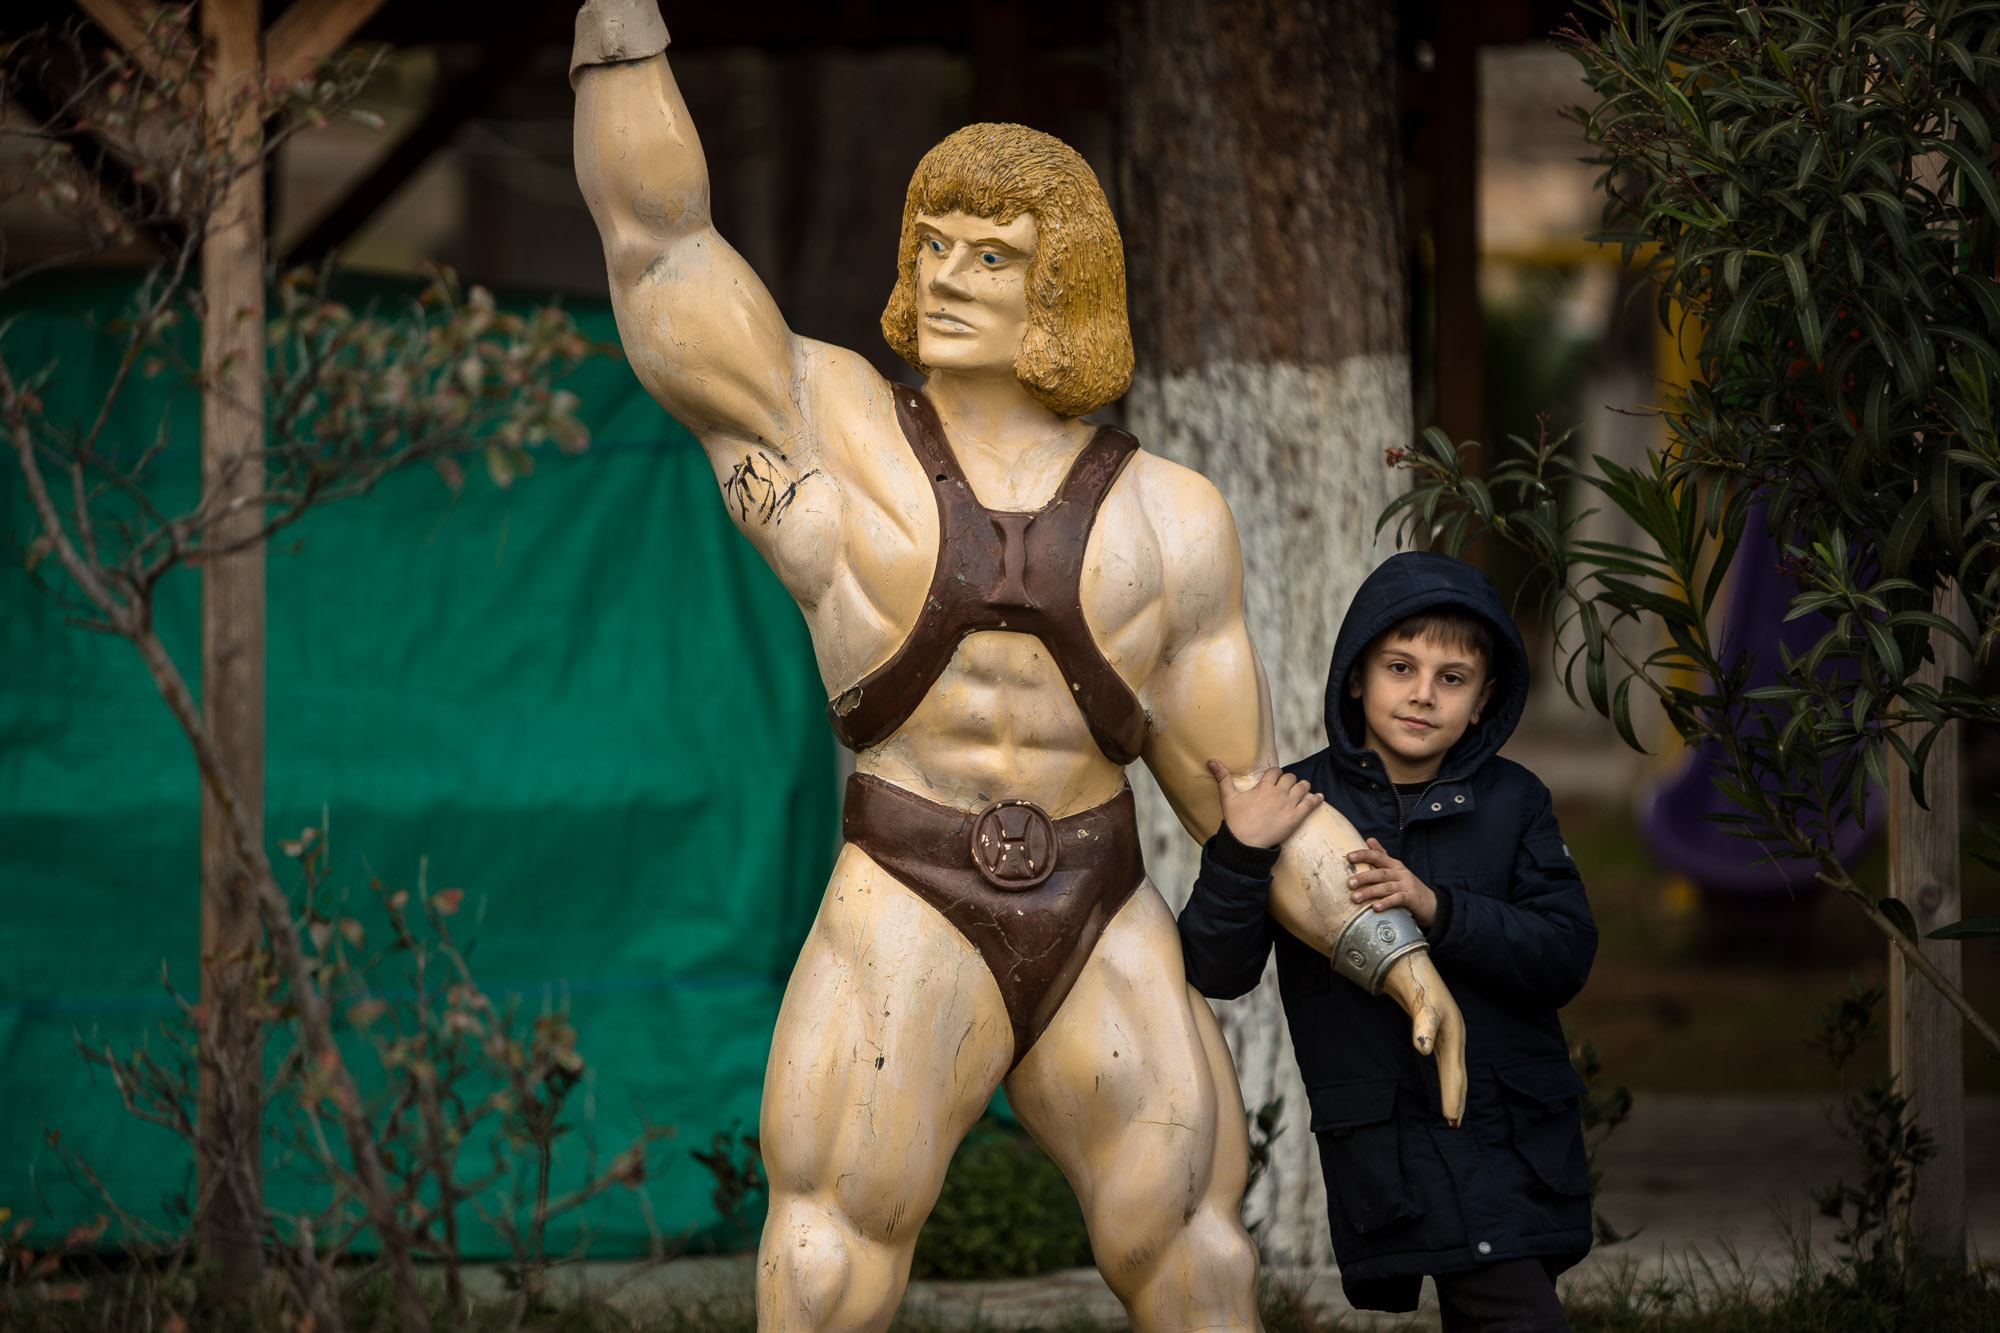 He-Man with little kid